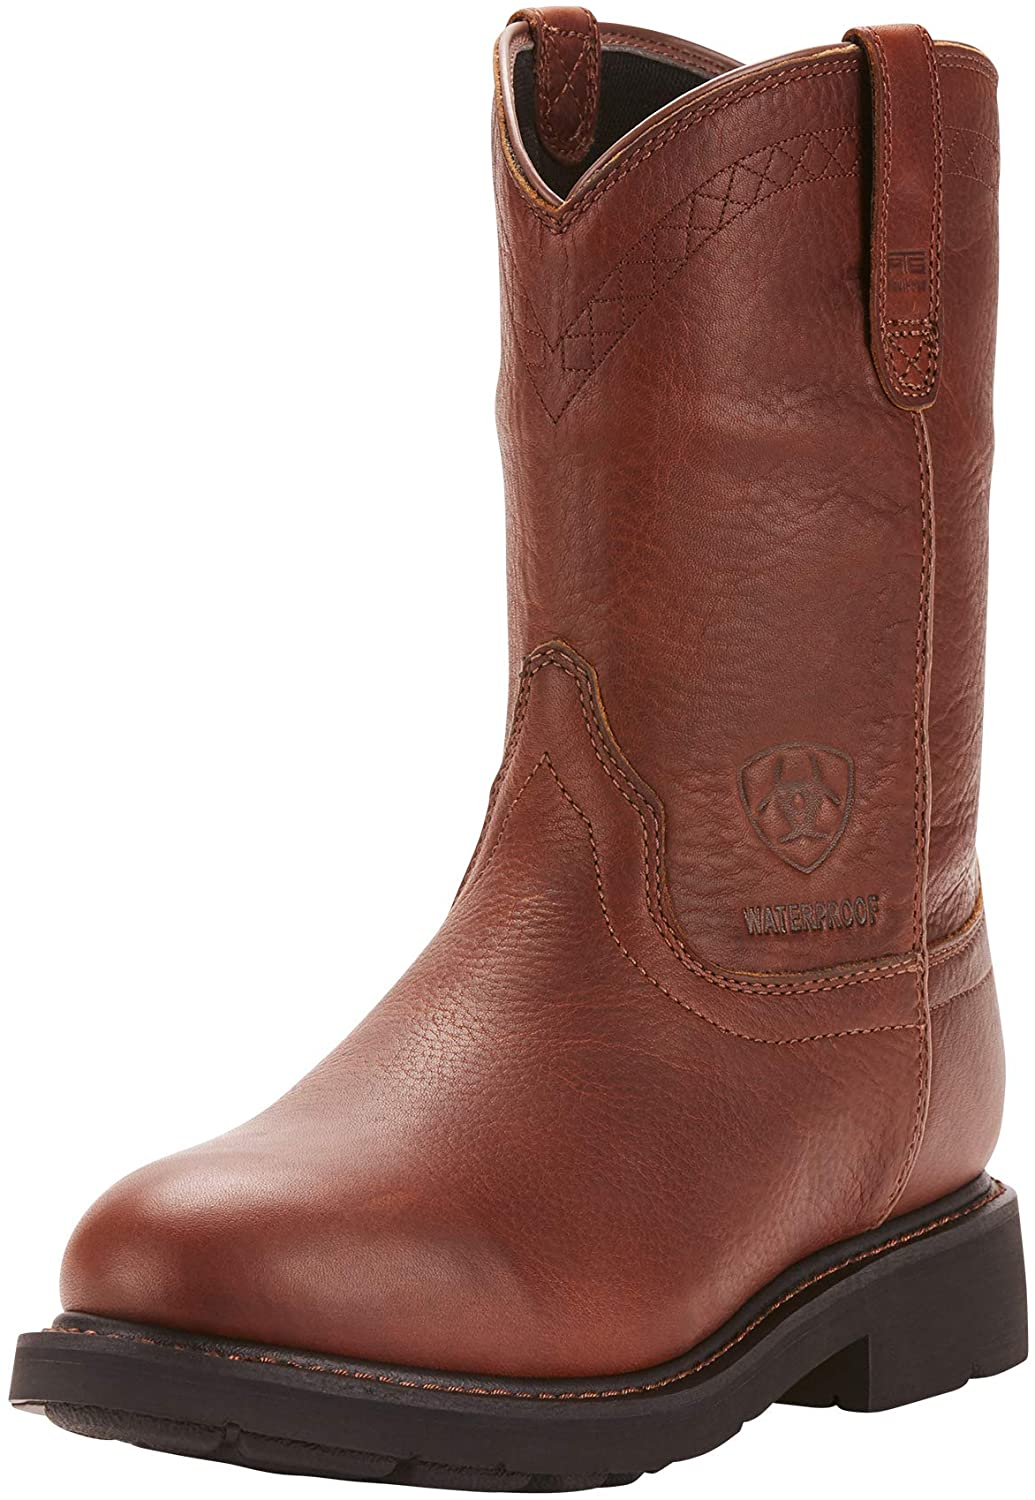 ARIAT Men's Sierra Waterproof Work Boot